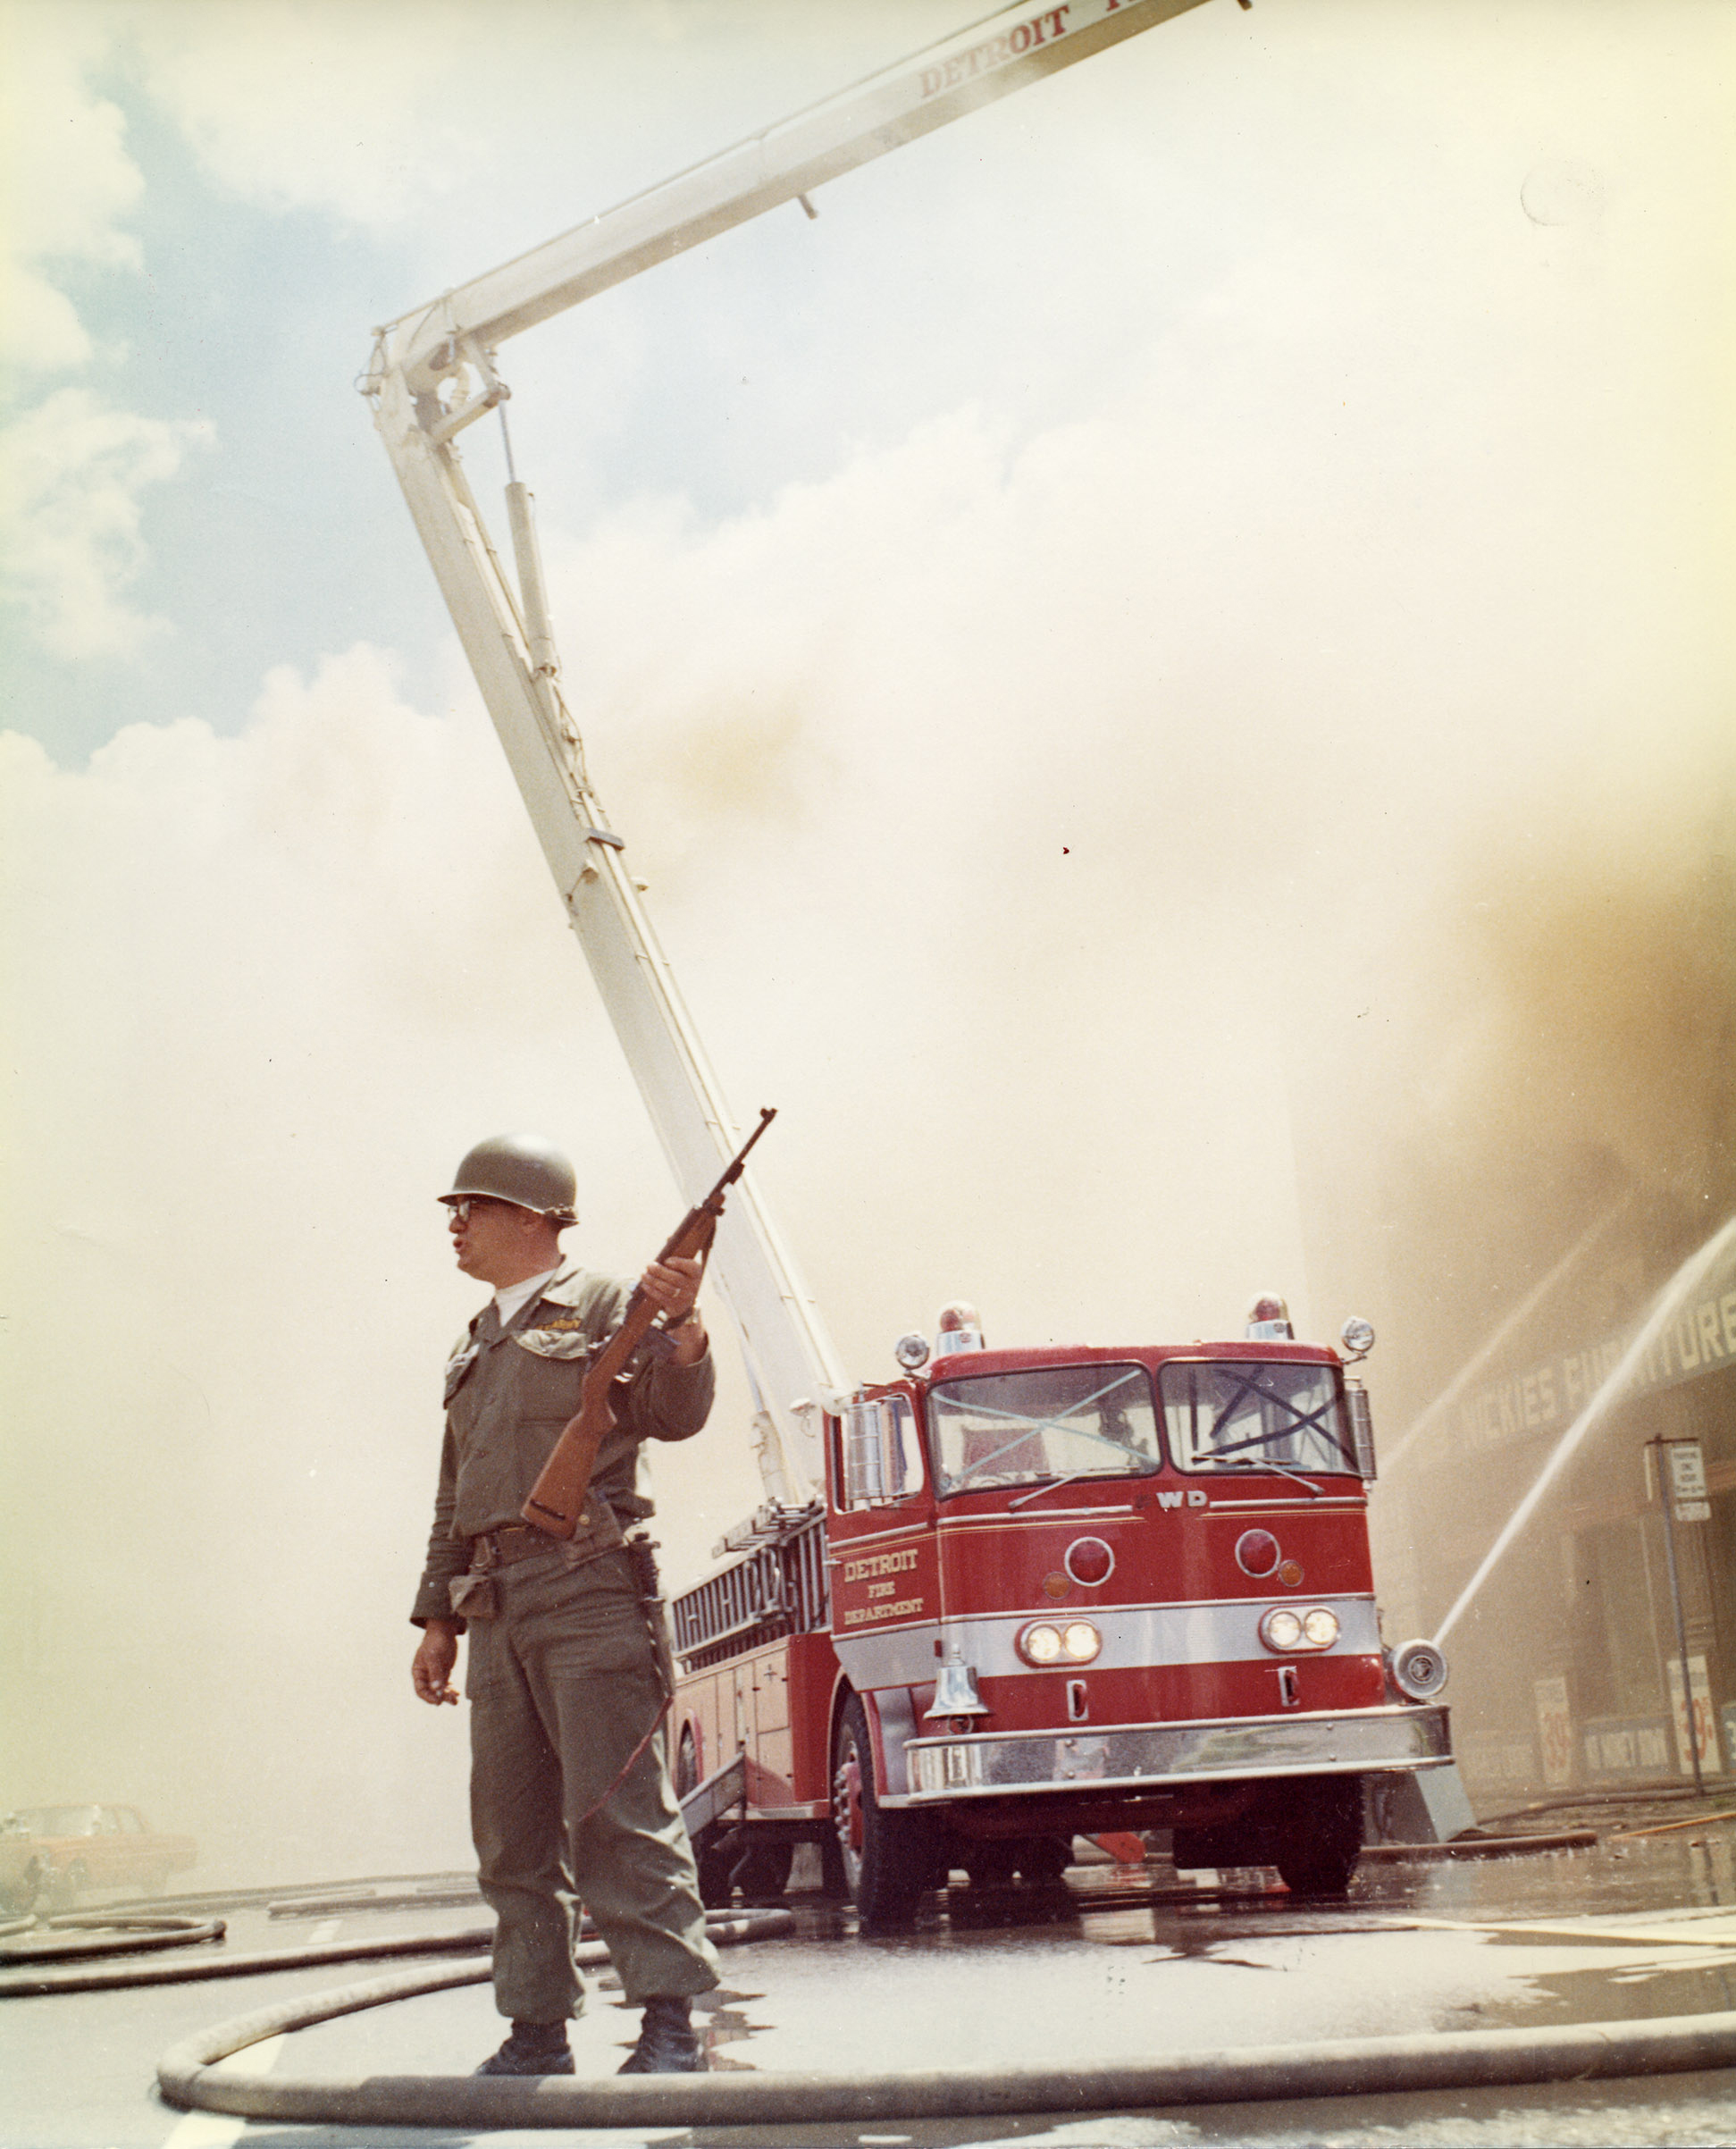 A U.S. army soldier watches the streets while the Detroit Fire Department extinguishes a blaze at Nickie's Furniture store on Grand River Avenue near Forest in Detroit.